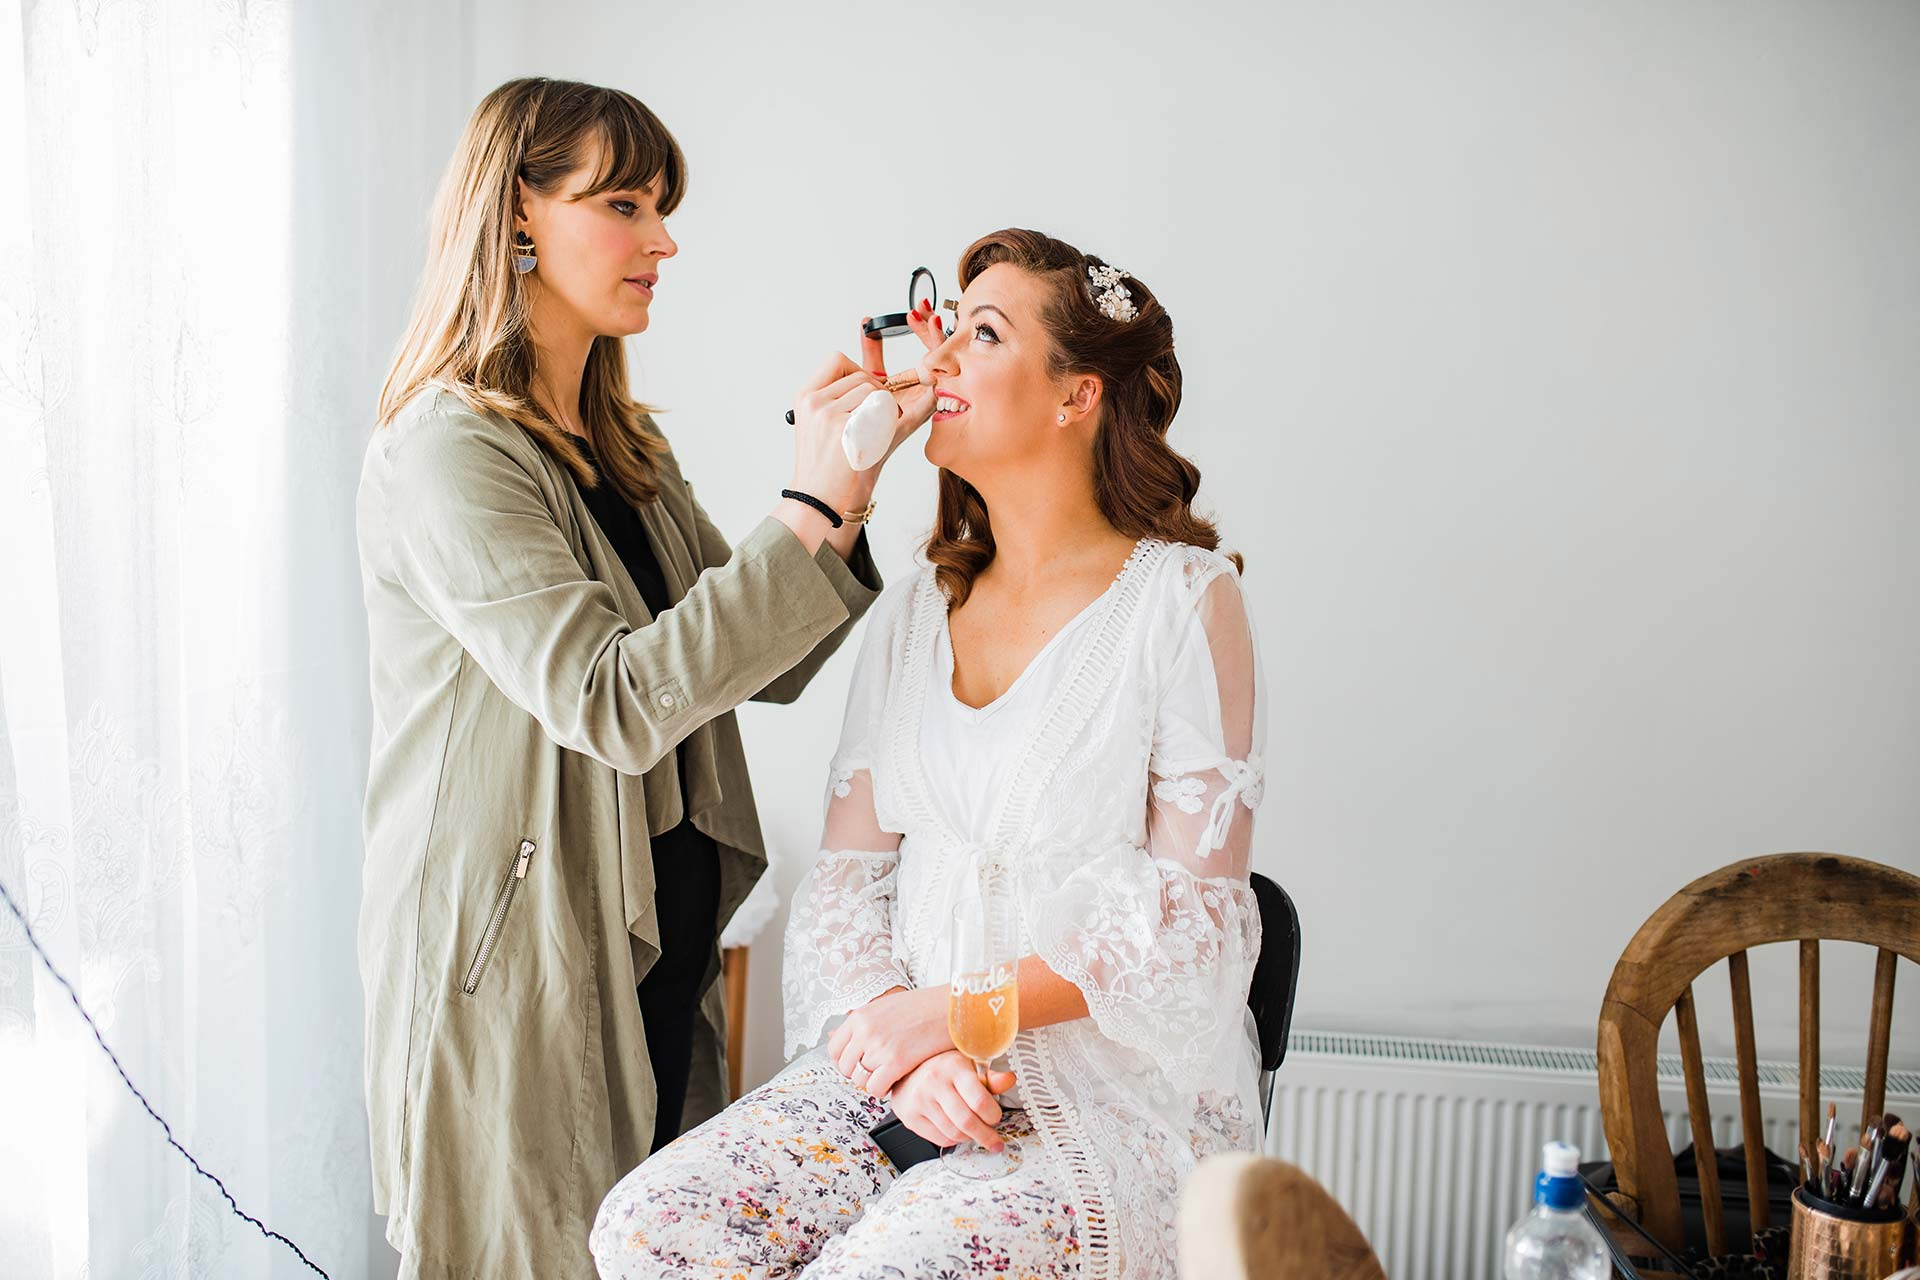 makeup artists touches up brides makeup